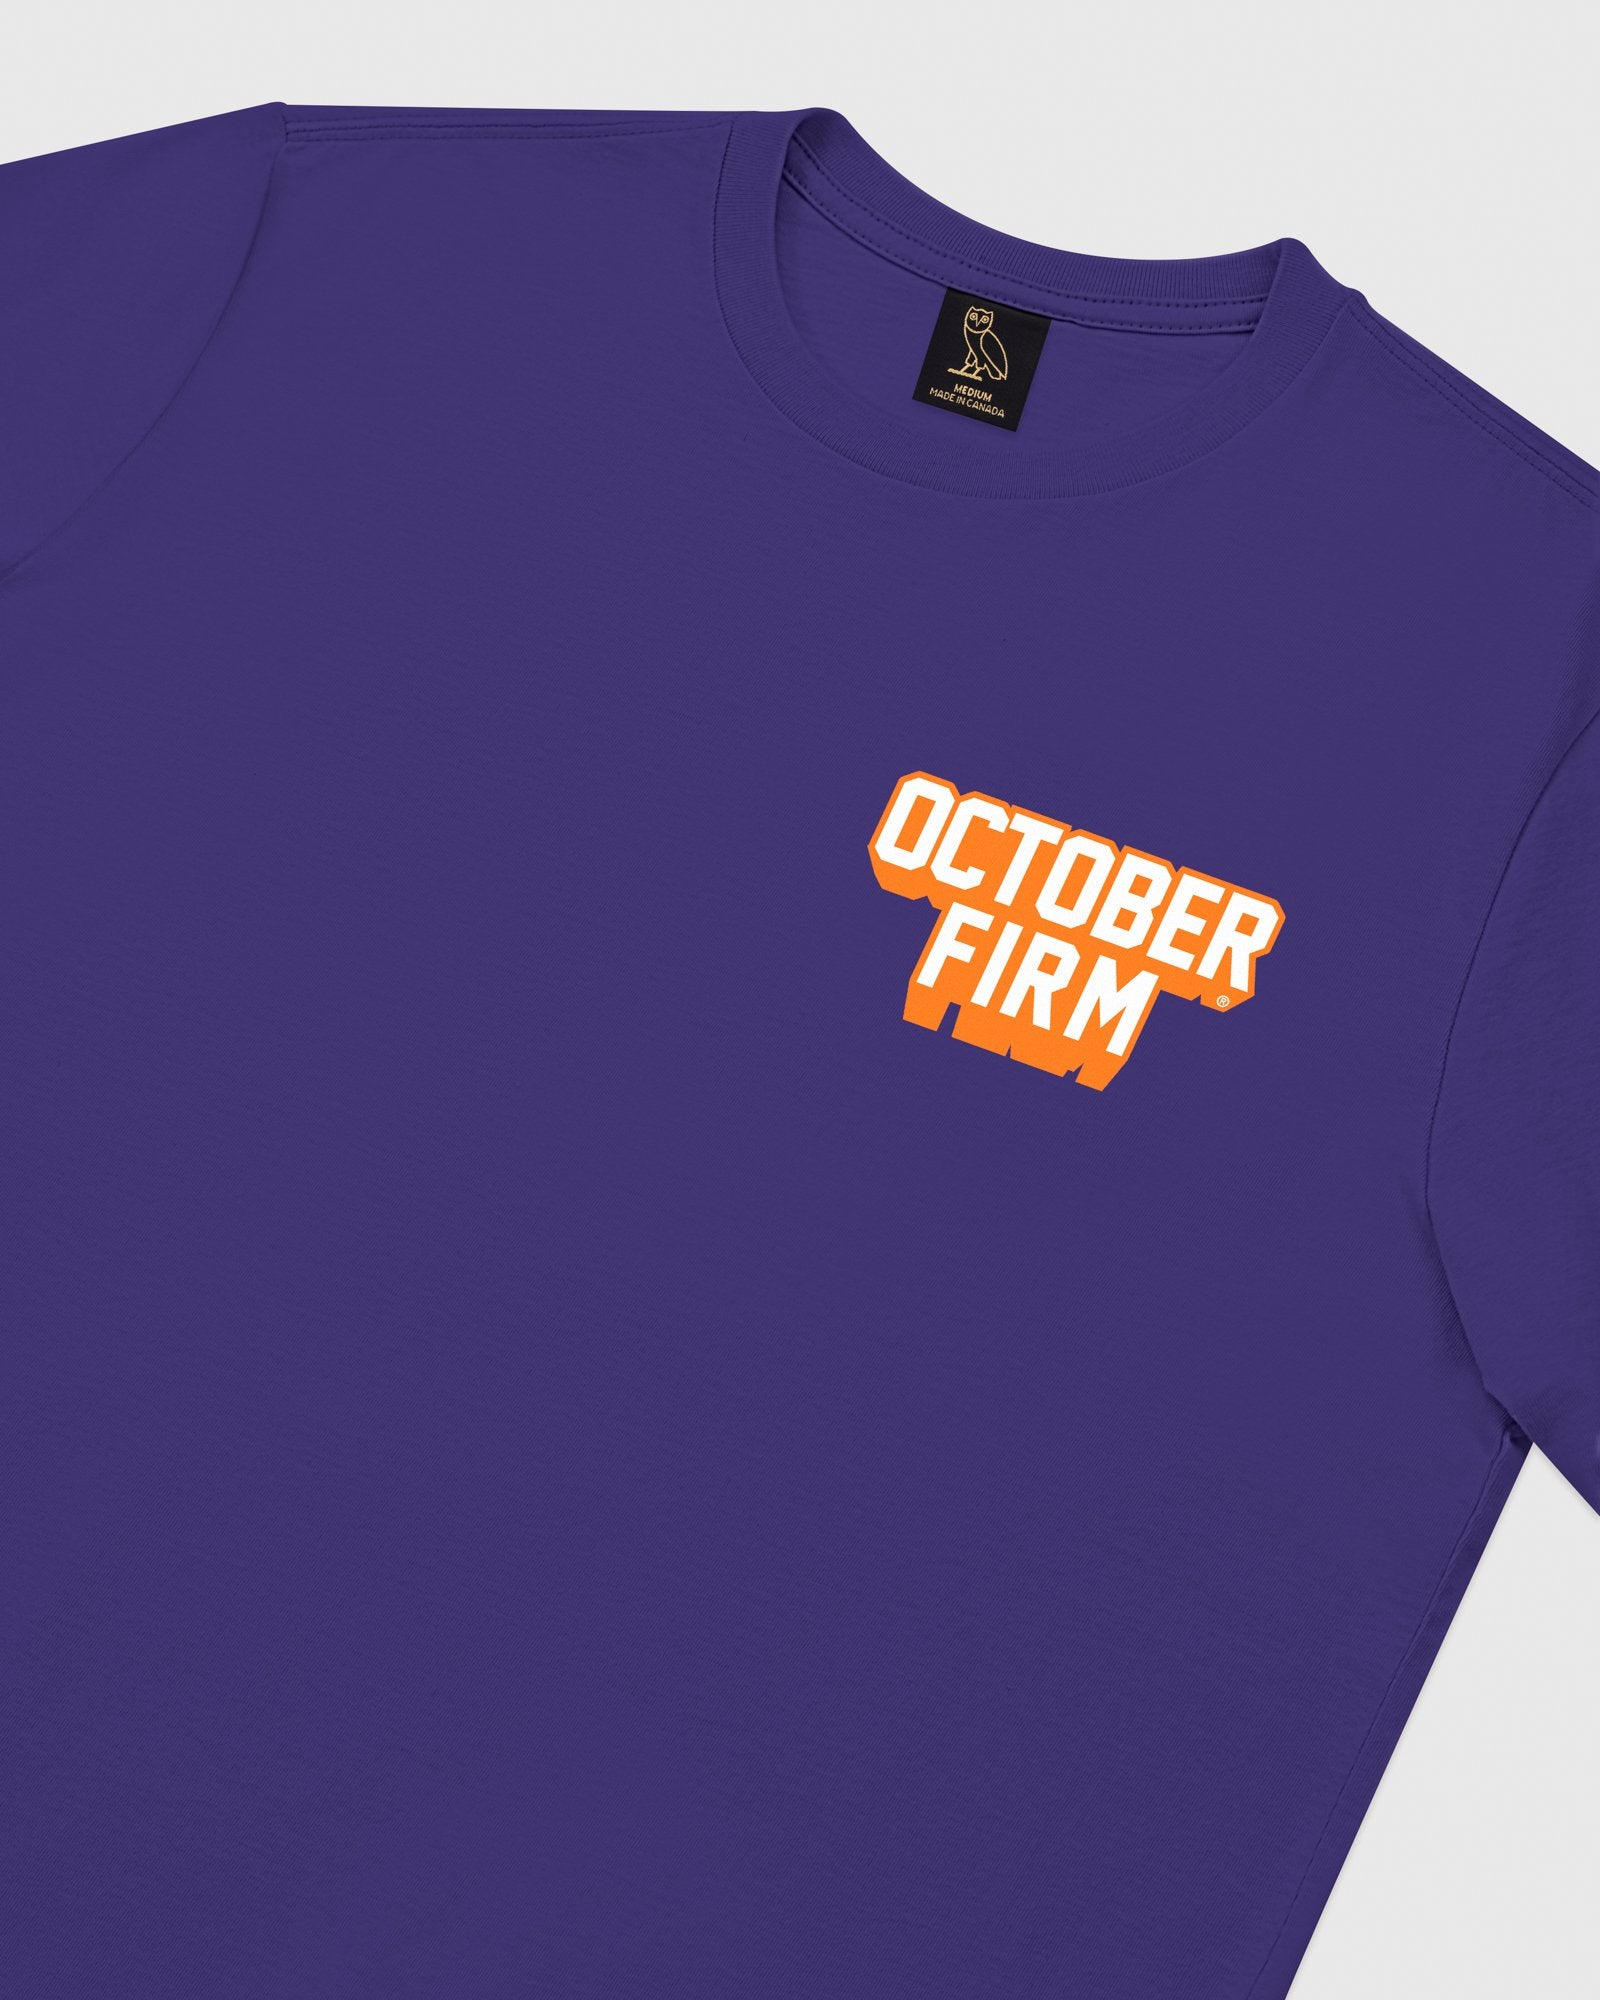 OCTOBER FIRM SHADOW LONGSLEEVE T-SHIRT - PURPLE IMAGE #4